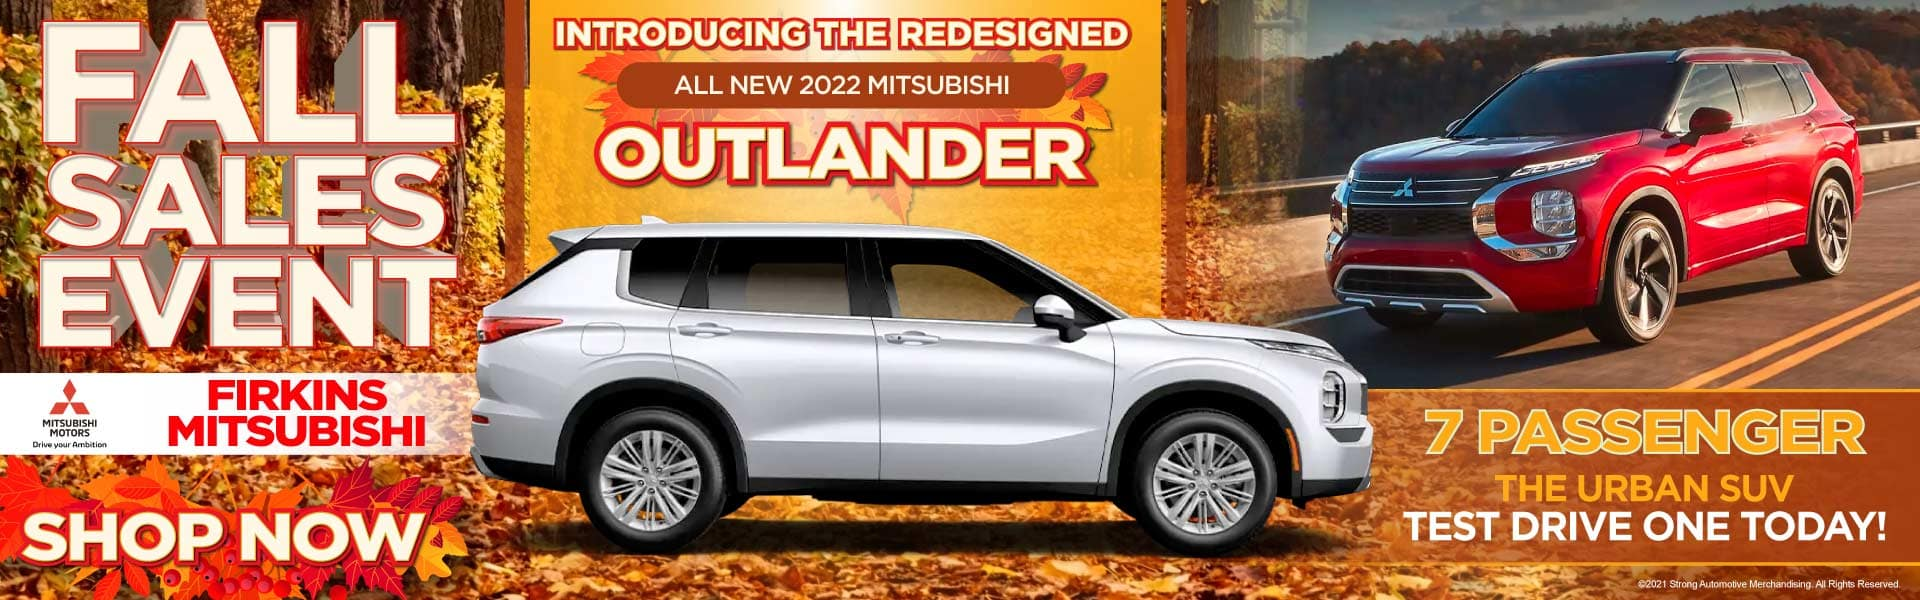 Introducing the Redesigned all New 2022 Mitsubishi Outlander - Test Drive One Today!